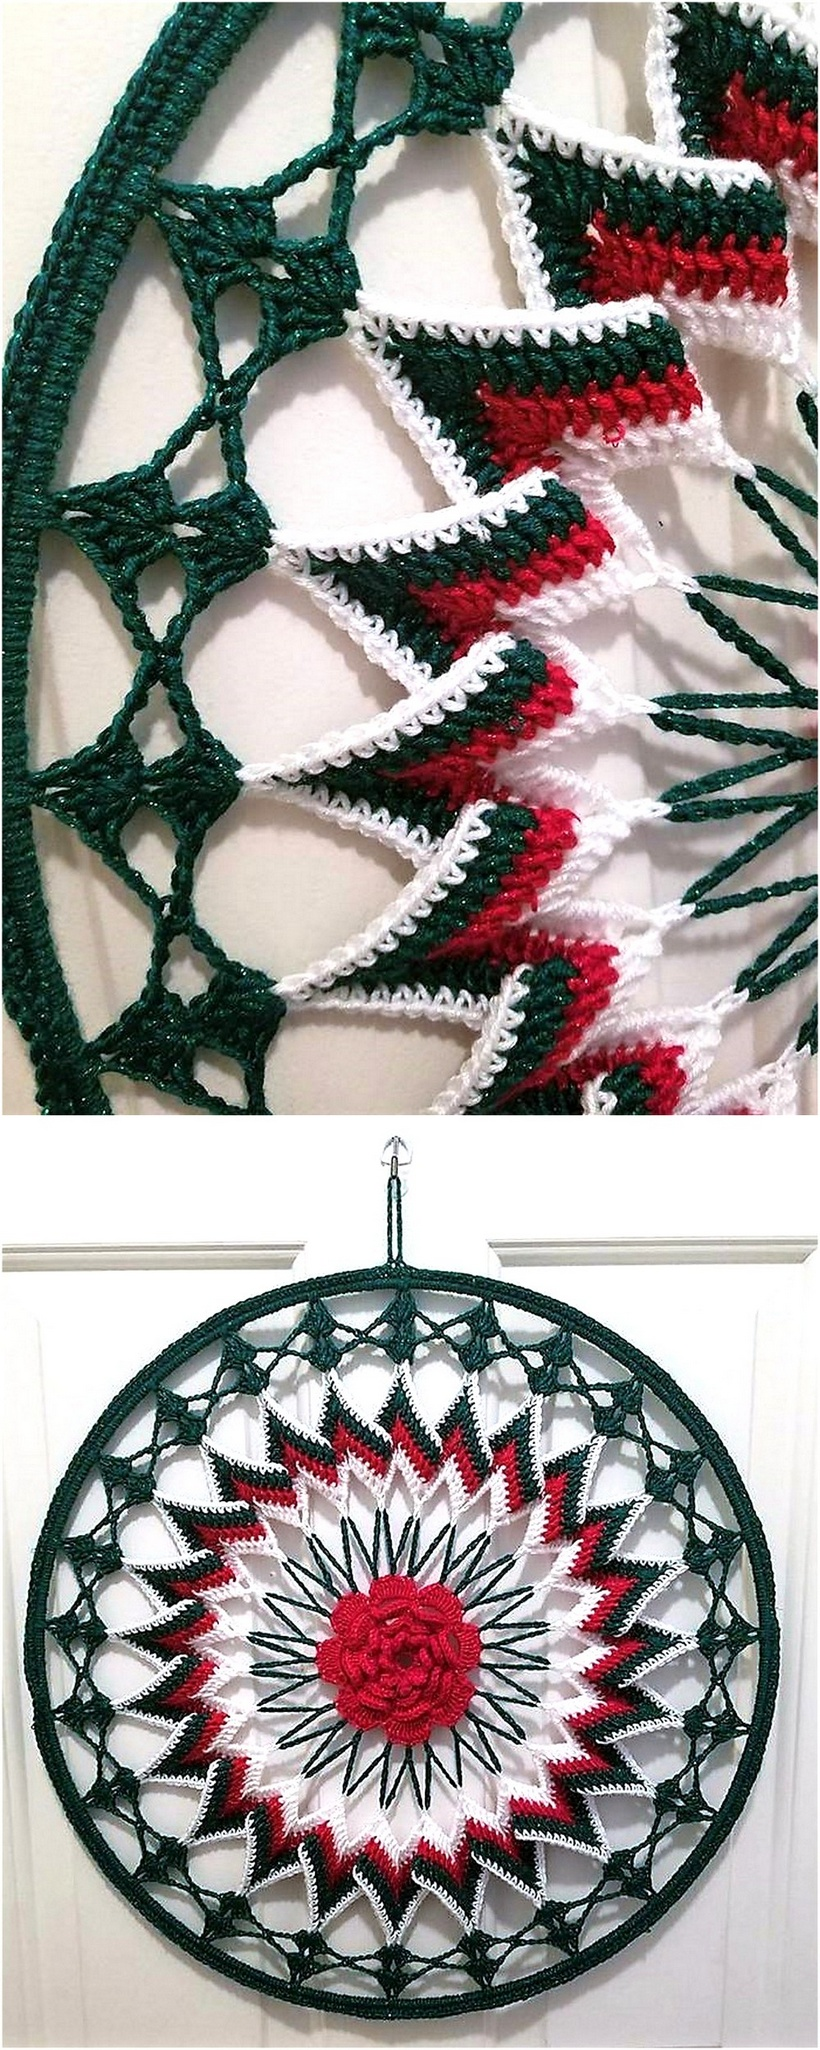 crochet dreamcatcher 2